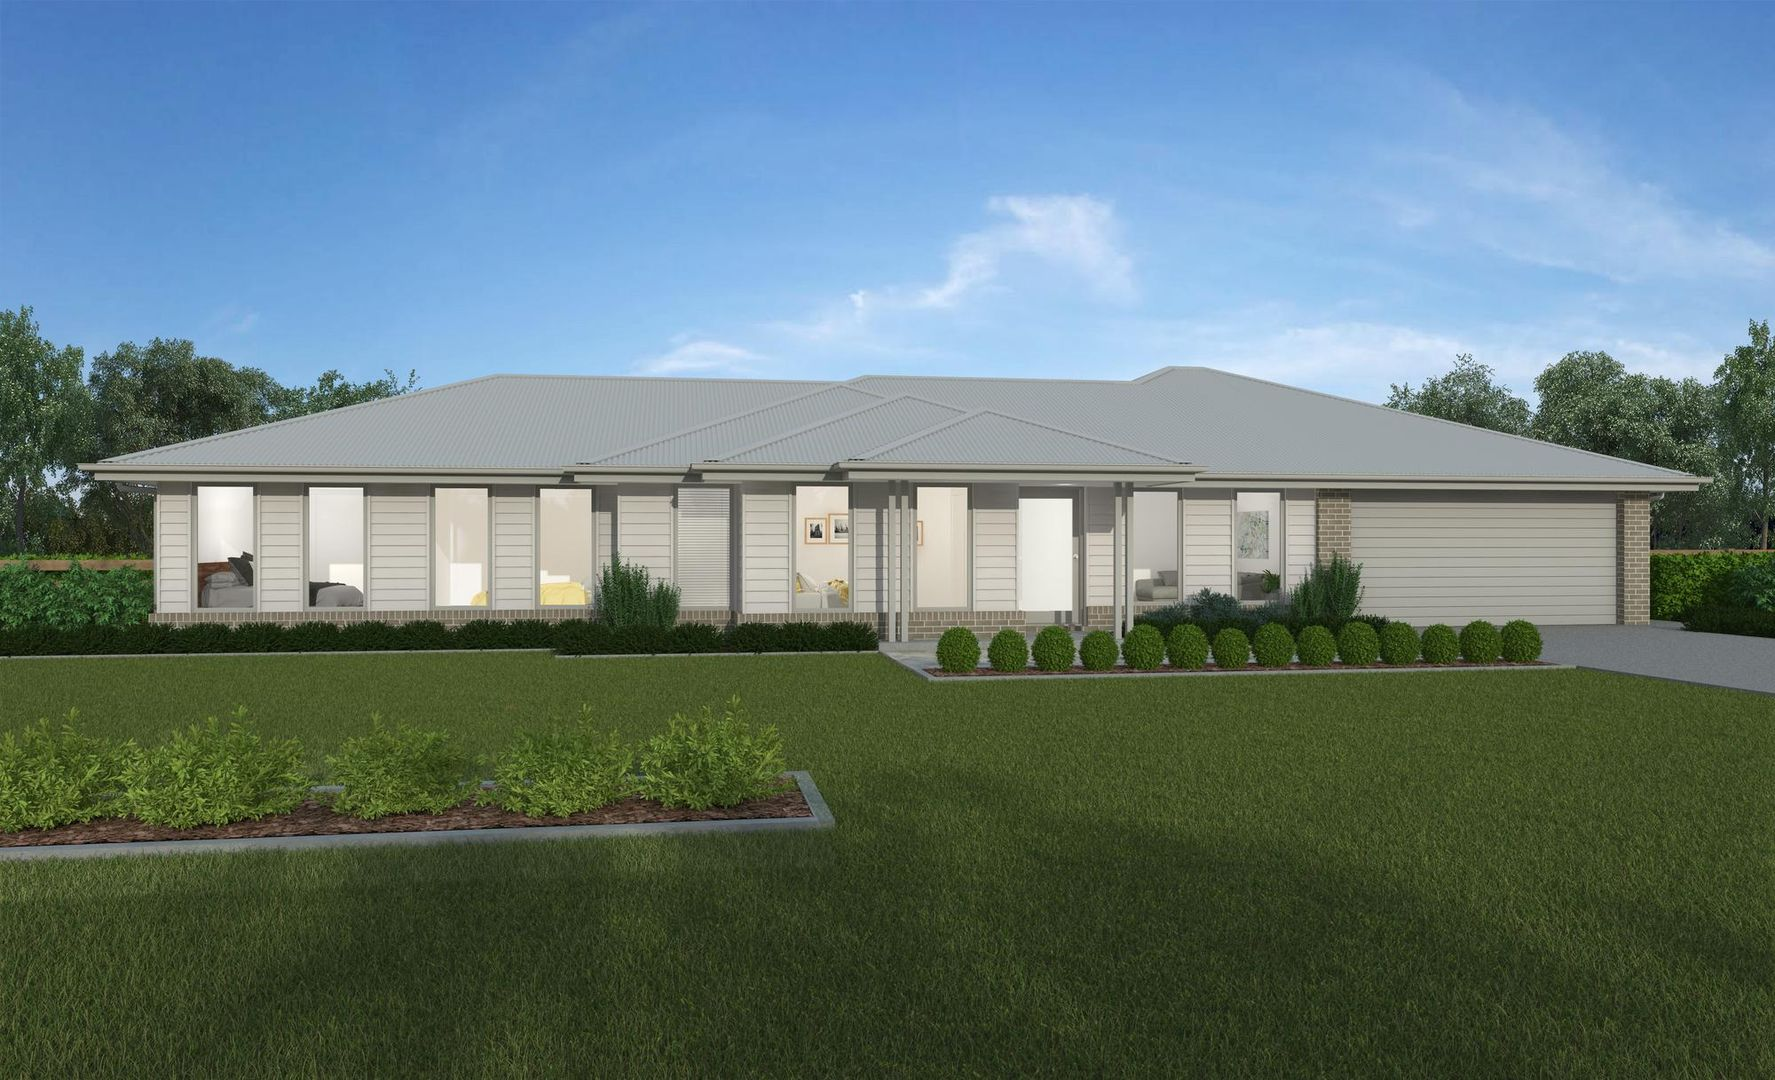 17 Proposed Road, Dungog NSW 2420, Image 0